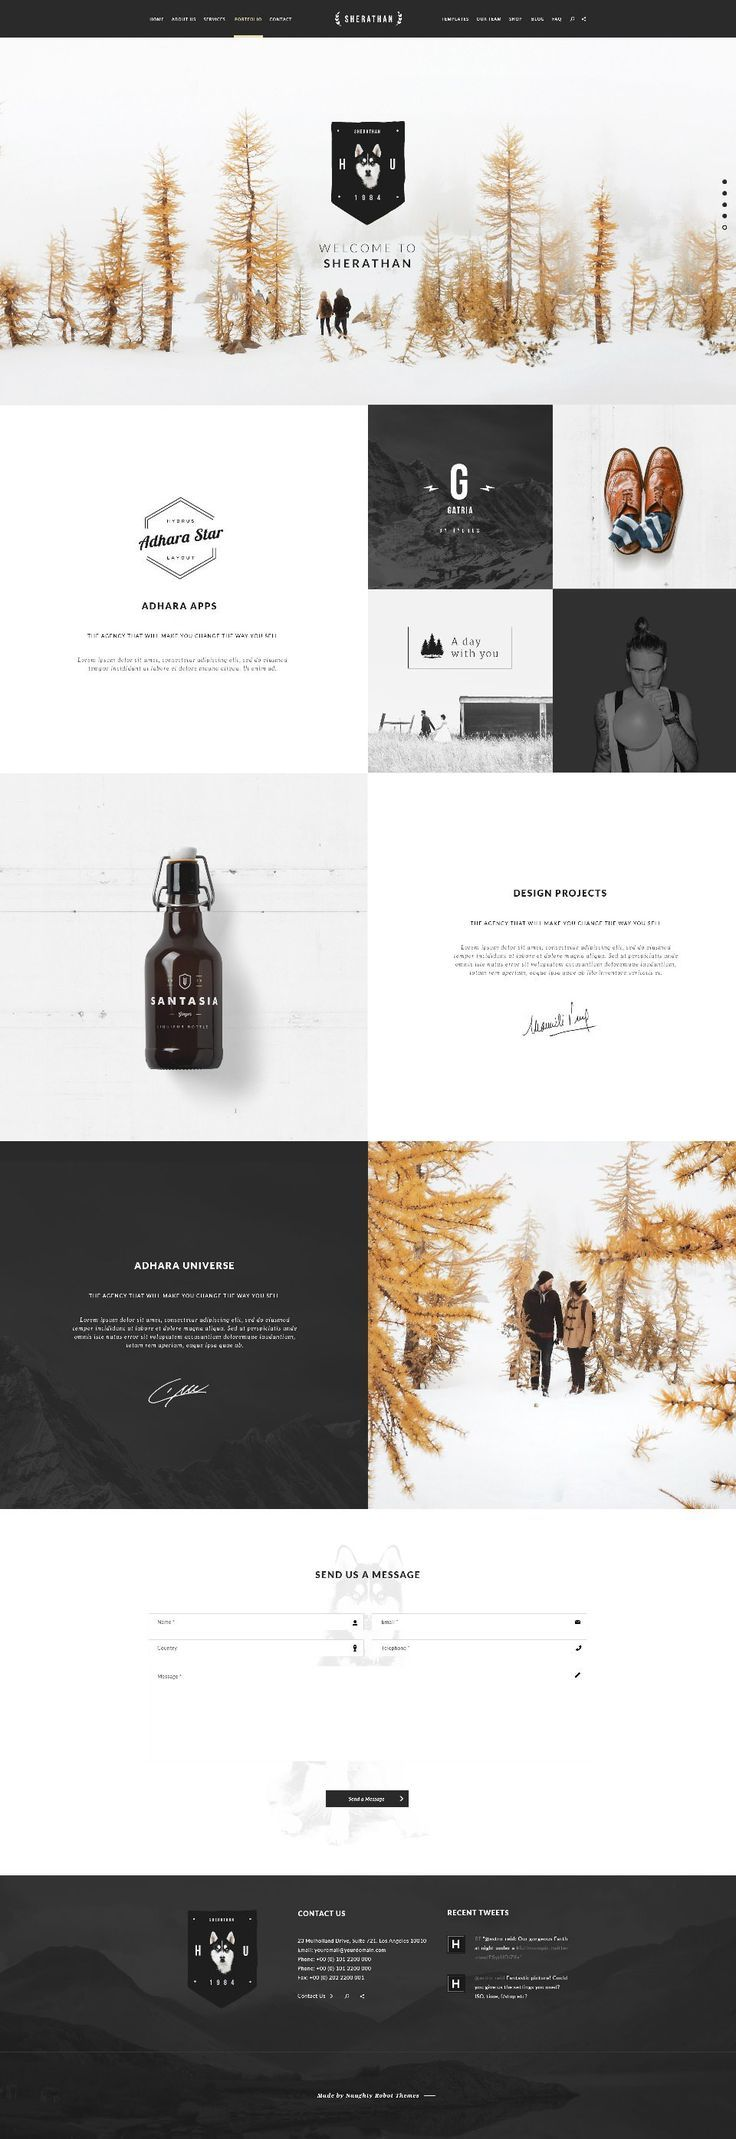 Best 25+ Web design services ideas on Pinterest | Web design ...